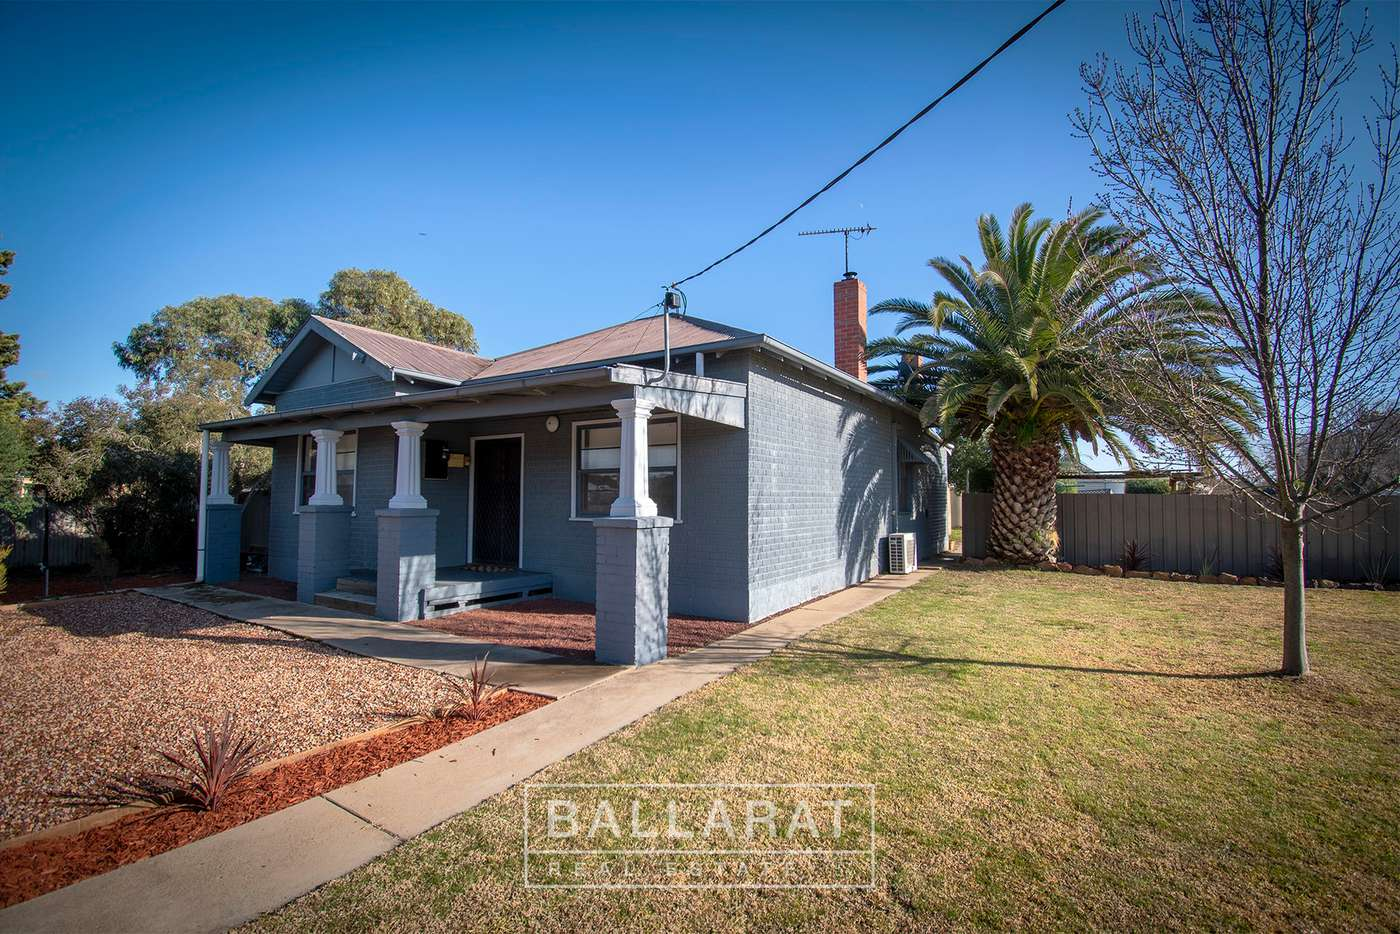 Main view of Homely house listing, 30 Thompson Street, Dunolly VIC 3472